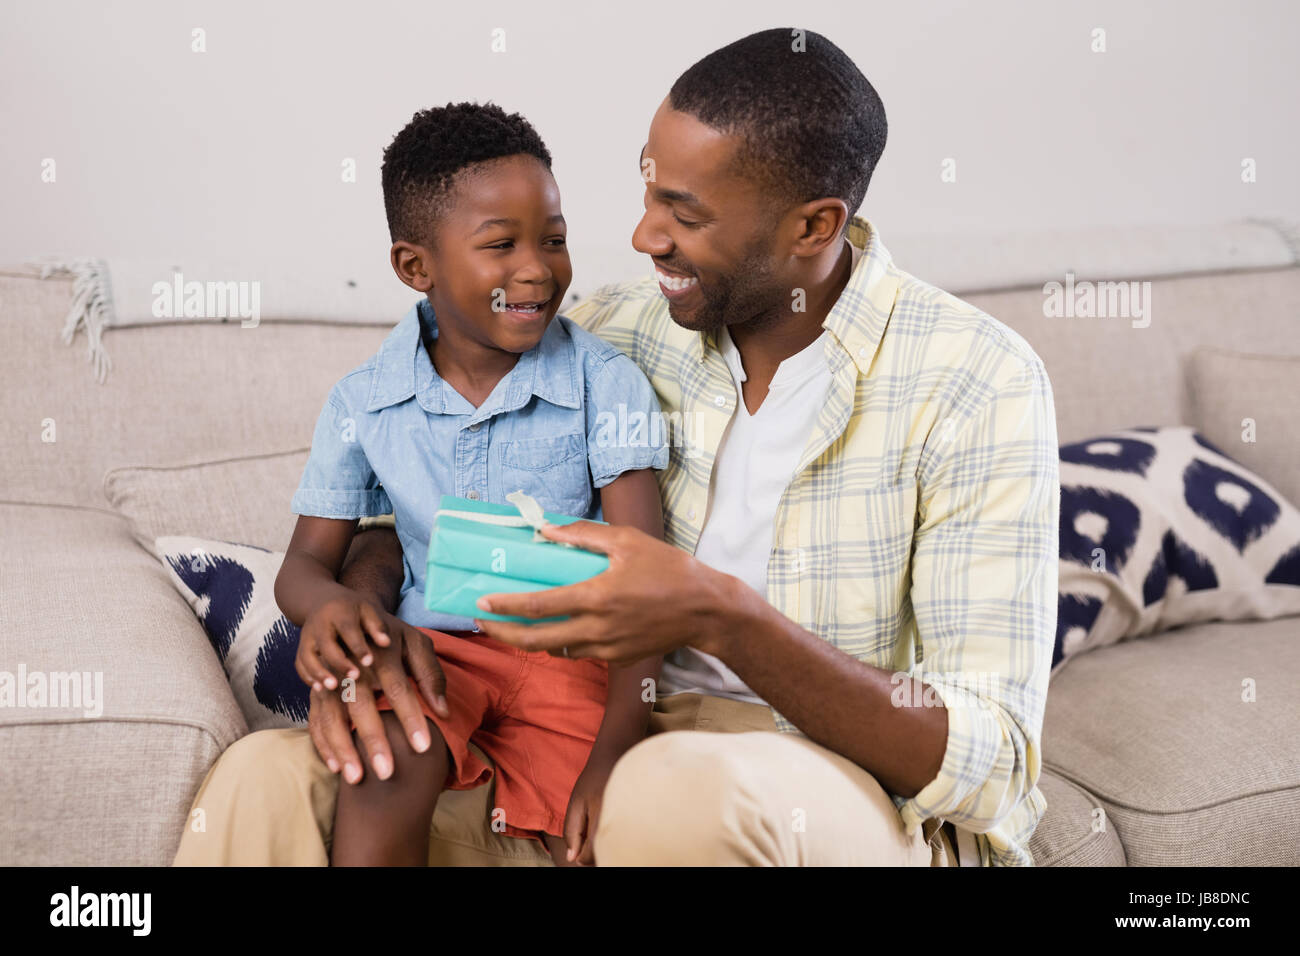 Cheerful father exchanging gift box on sofa at home - Stock Image